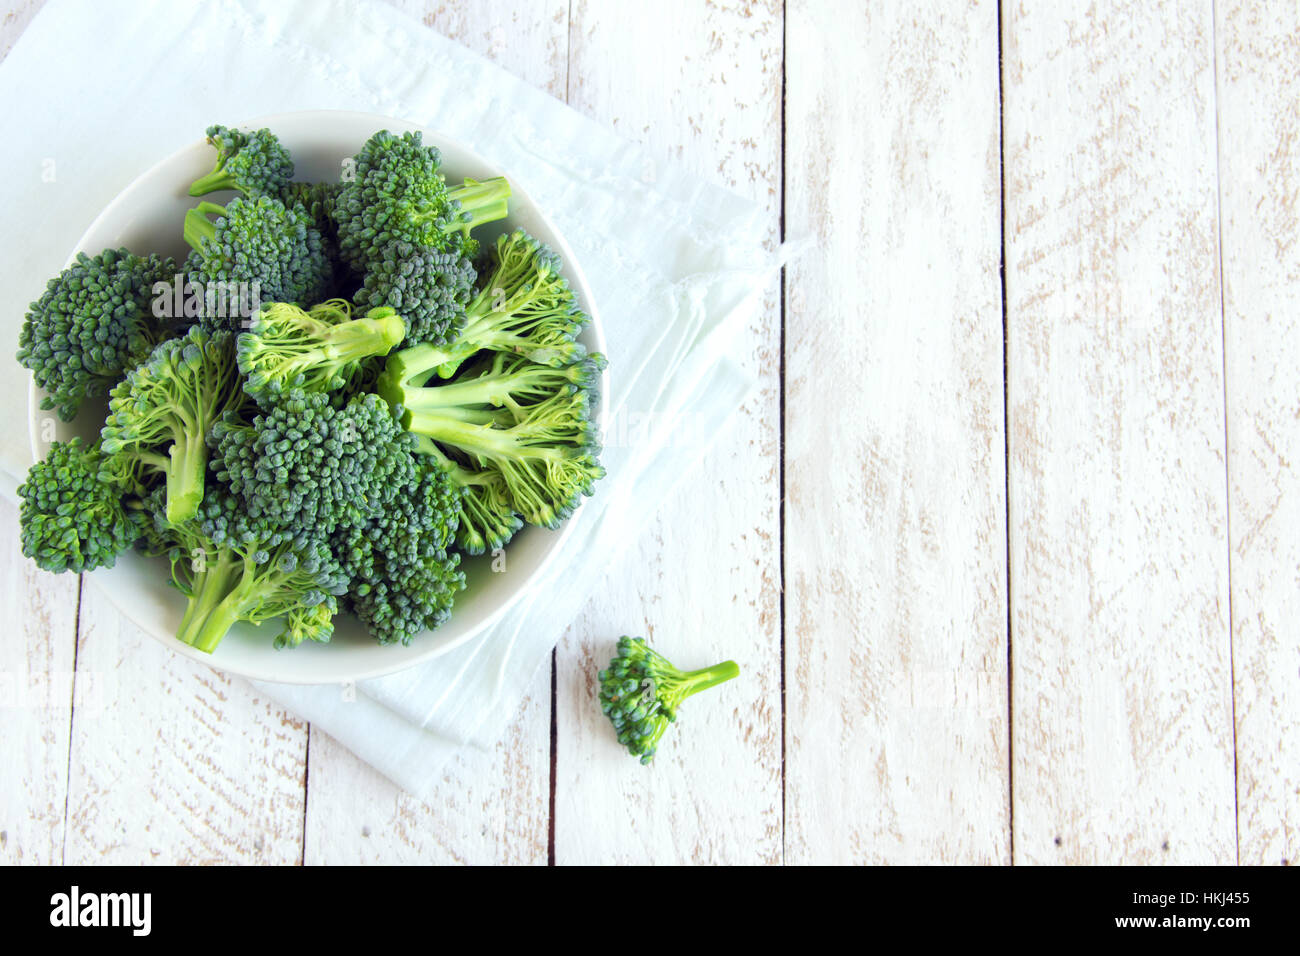 Healthy green organic raw uncooked broccoli on white wooden table with copy space - Stock Image